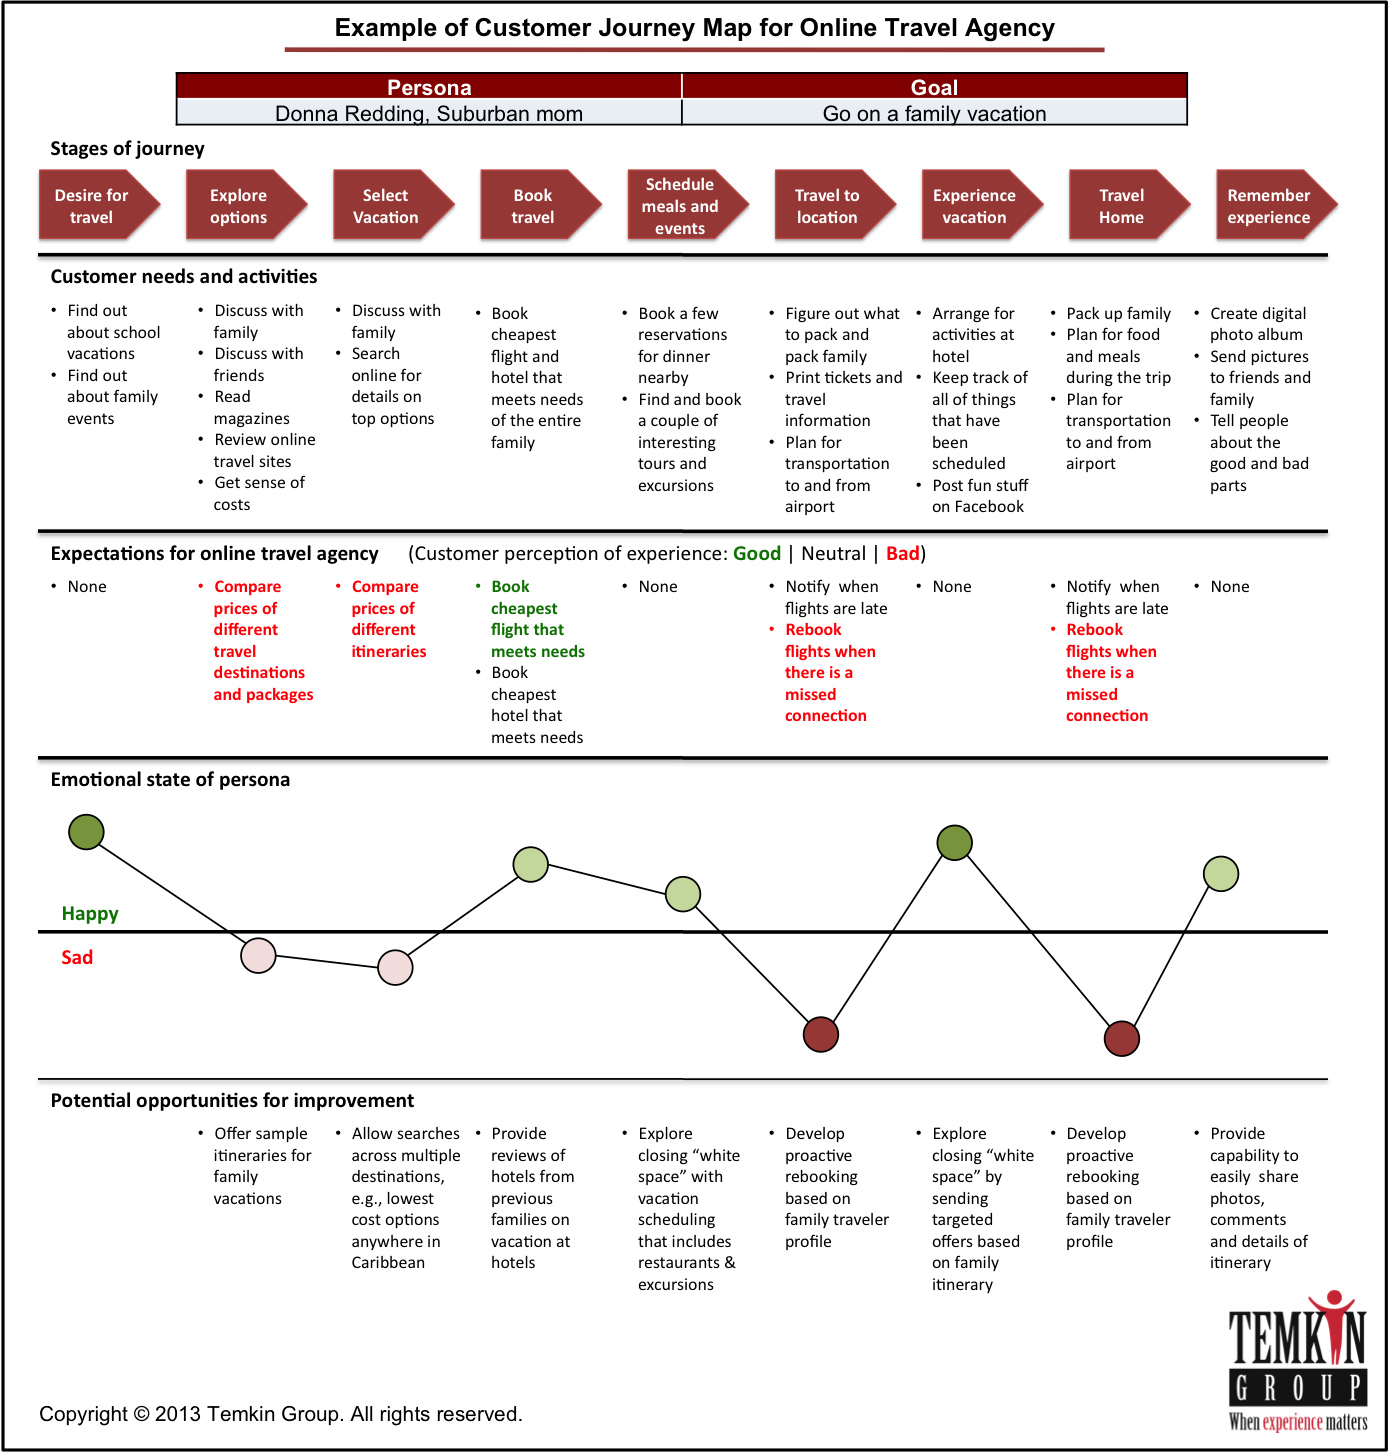 17 Best images about UX Personas & Journey Maps on Pinterest ...